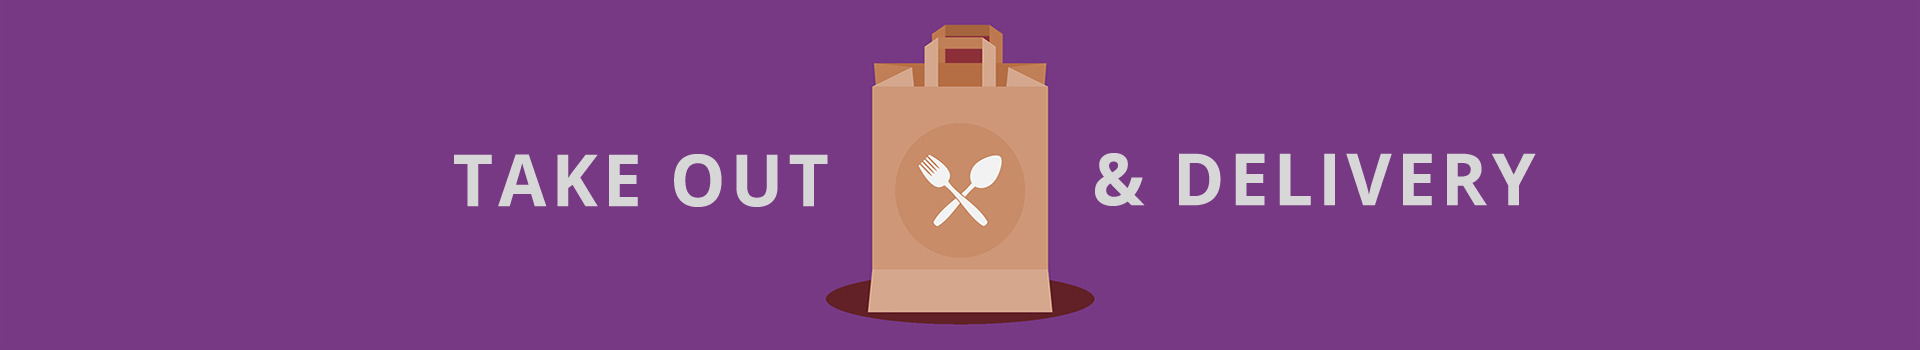 takeout graphic